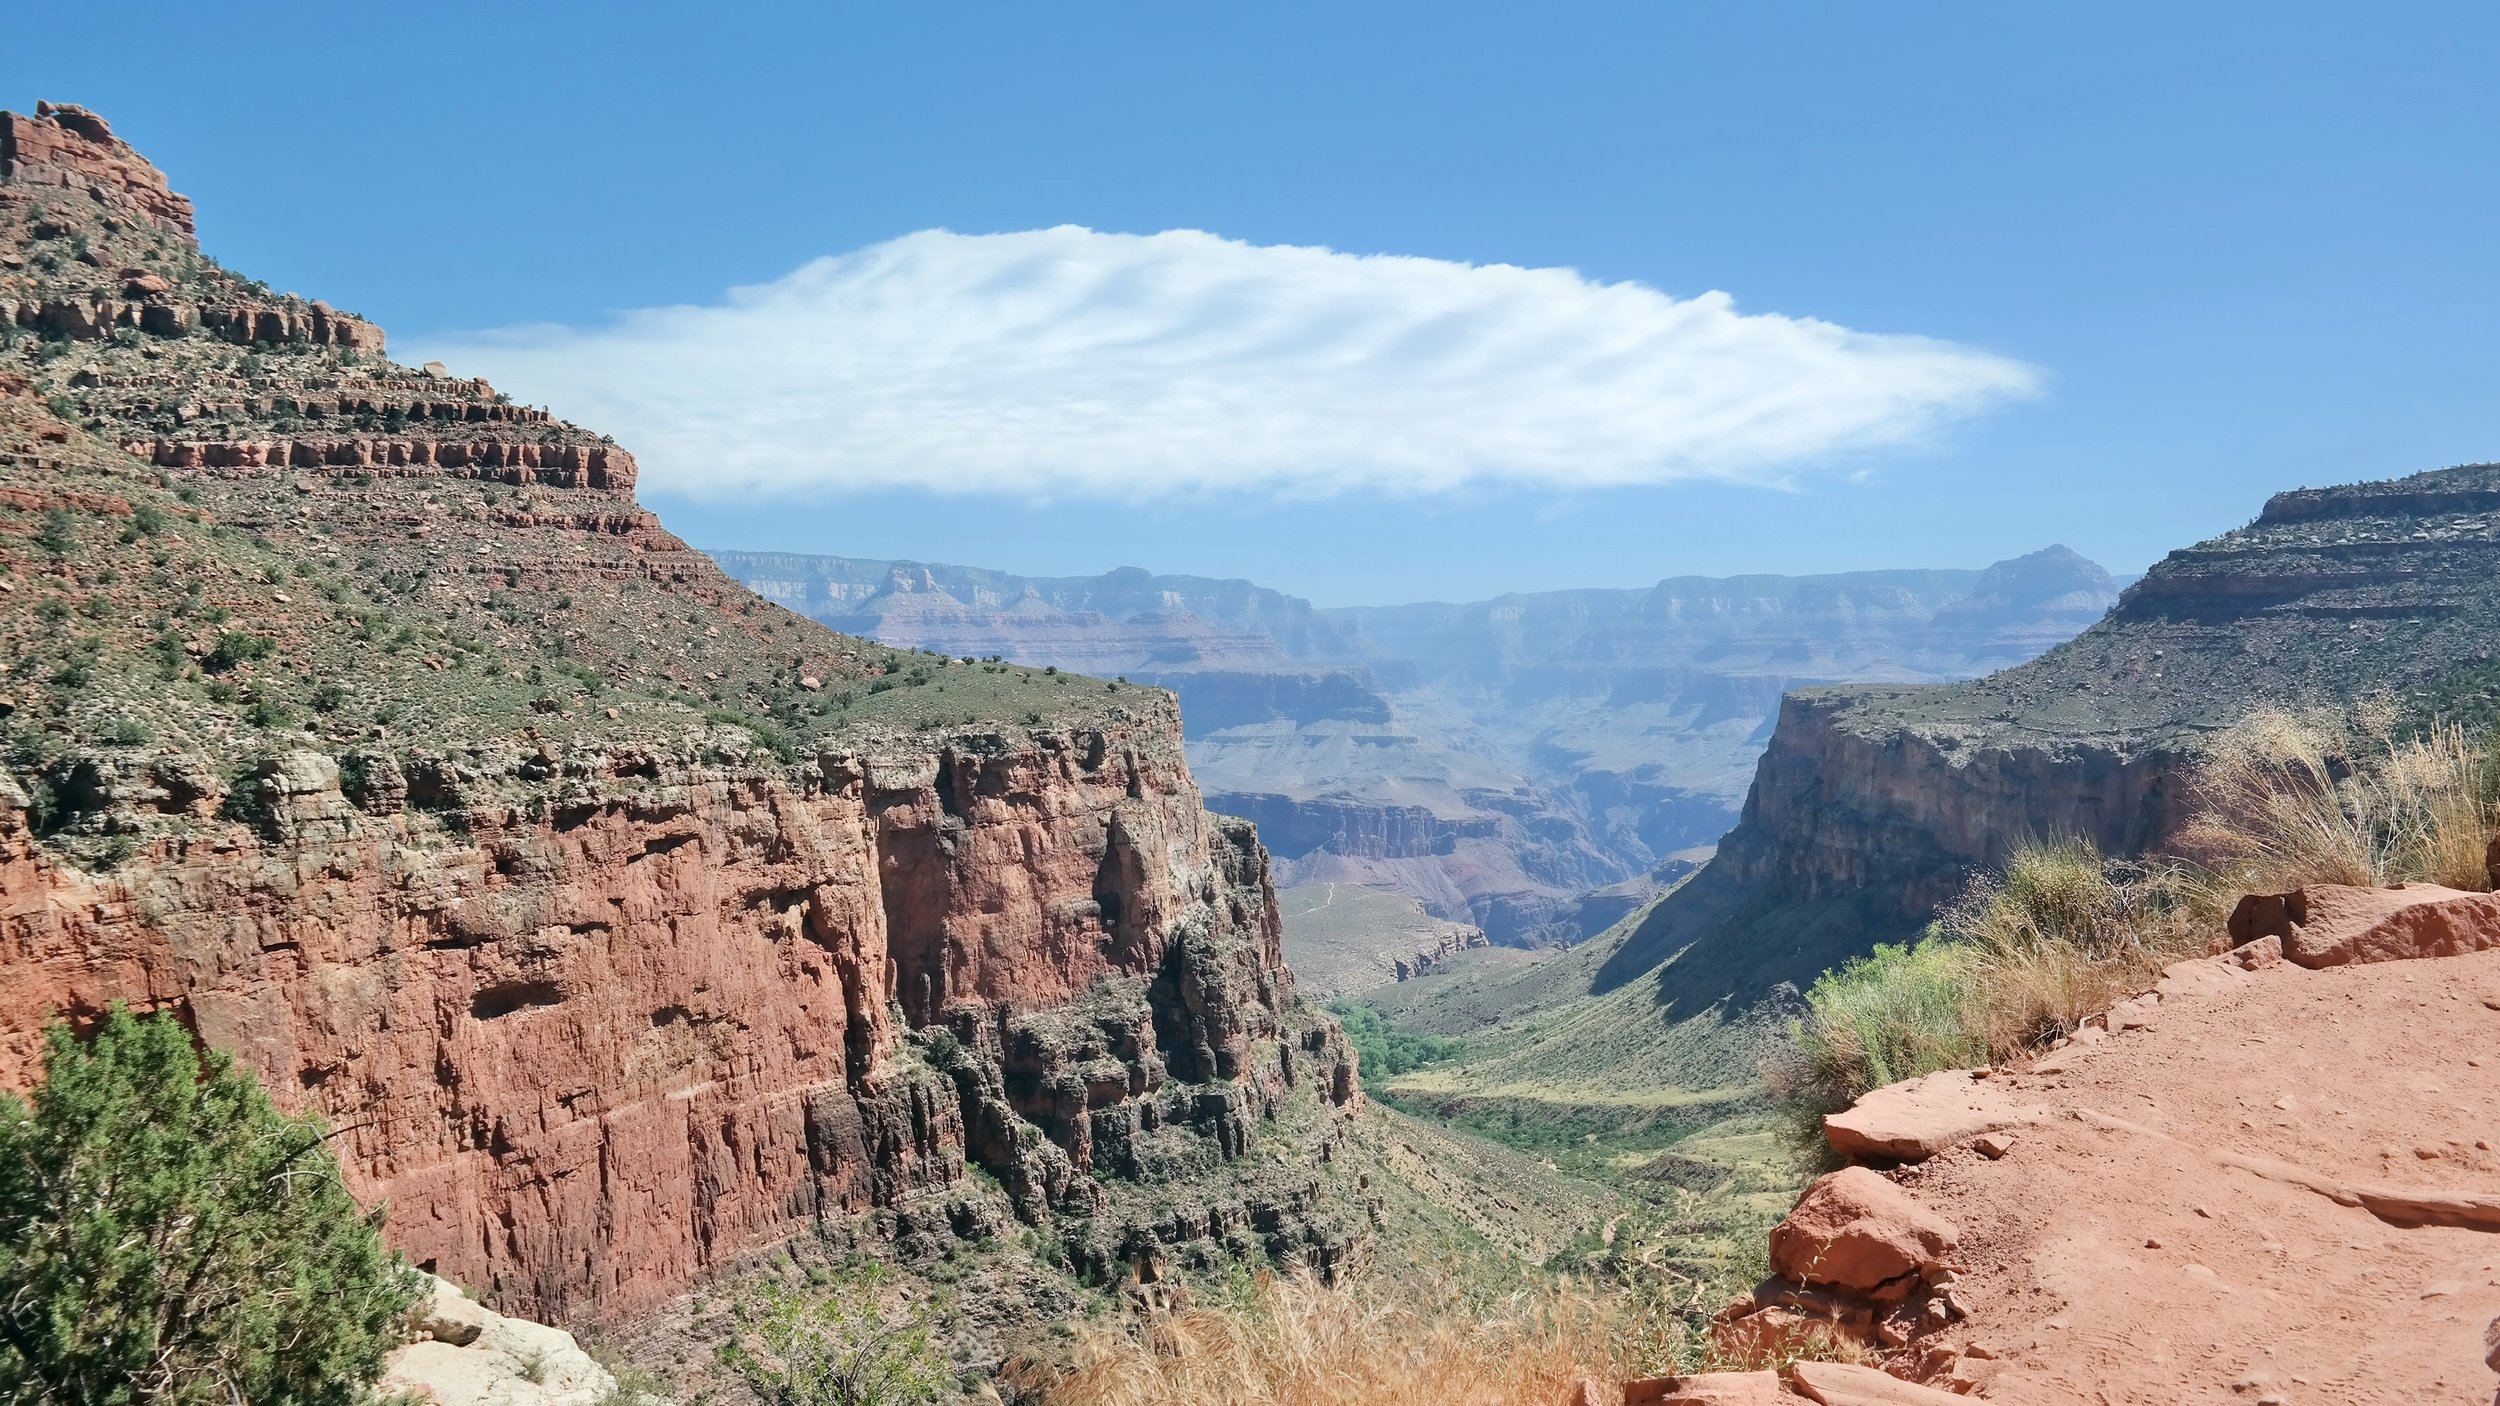 Day 3: View from Bright Angel Trail